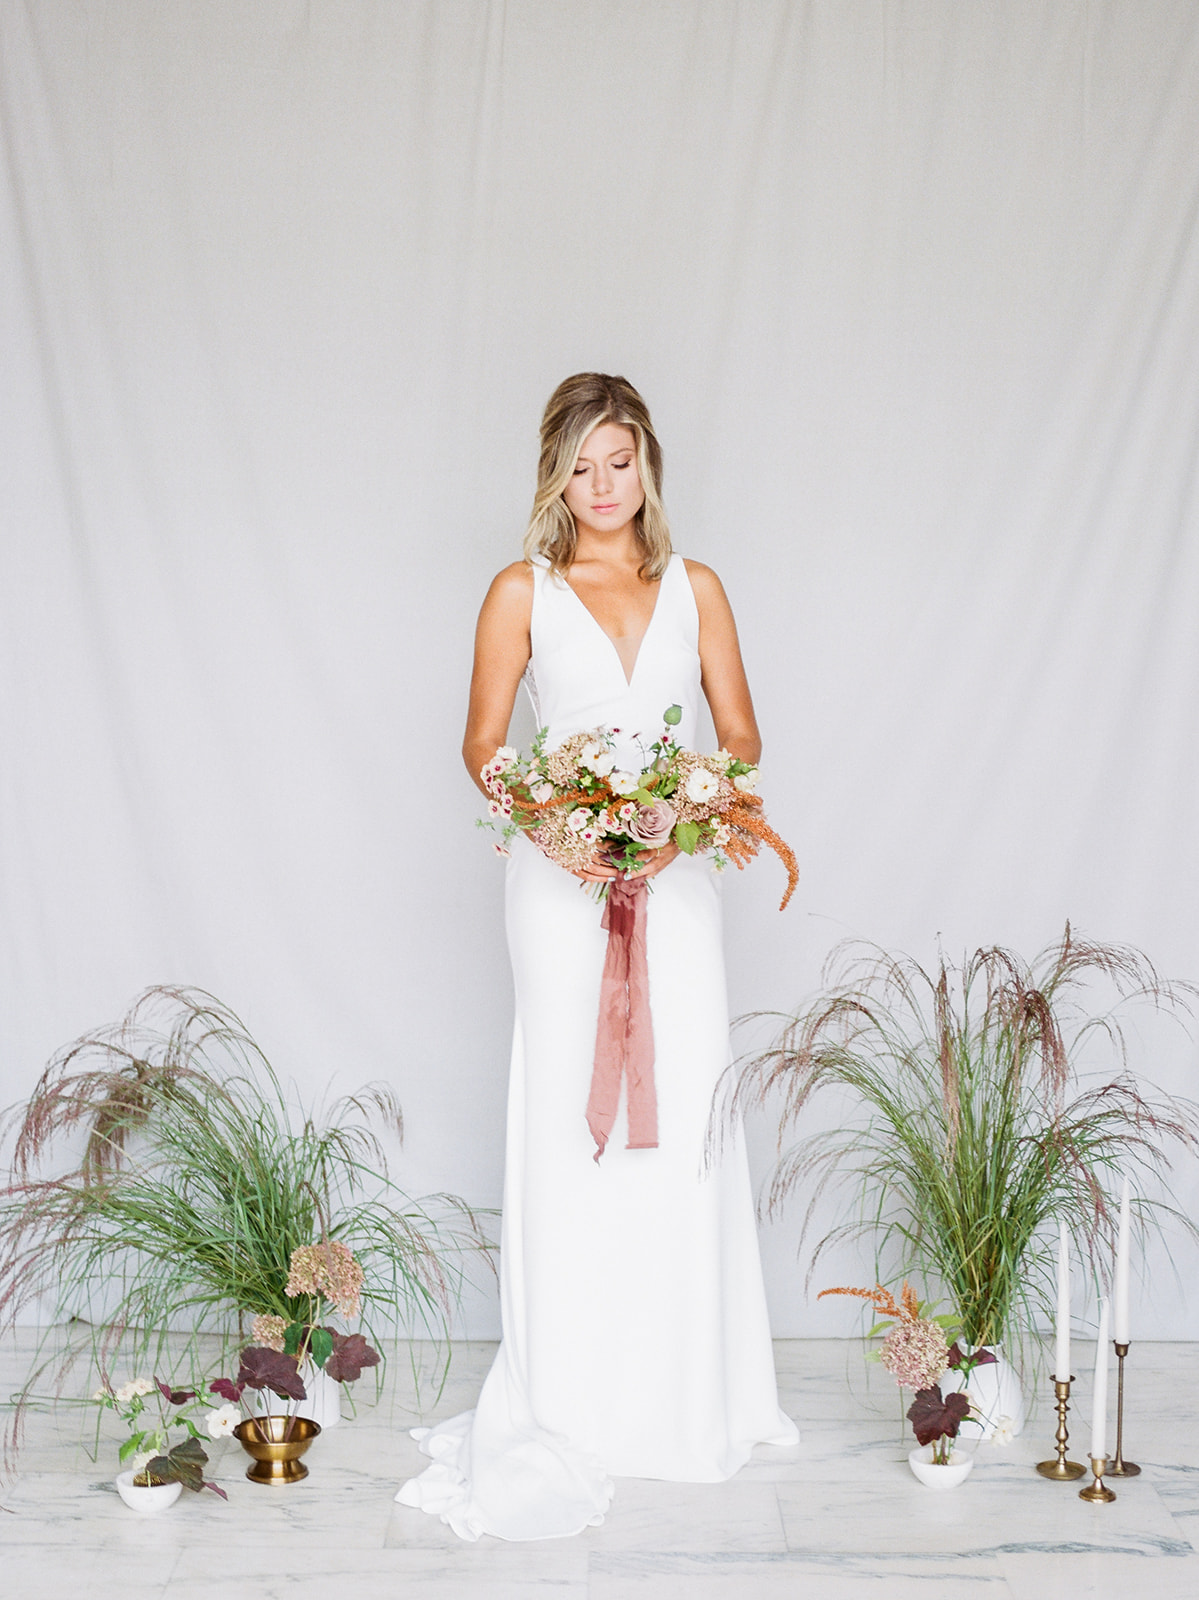 July Editorial with Angela_s Bridal by Michelle Lange Photography-13.jpg